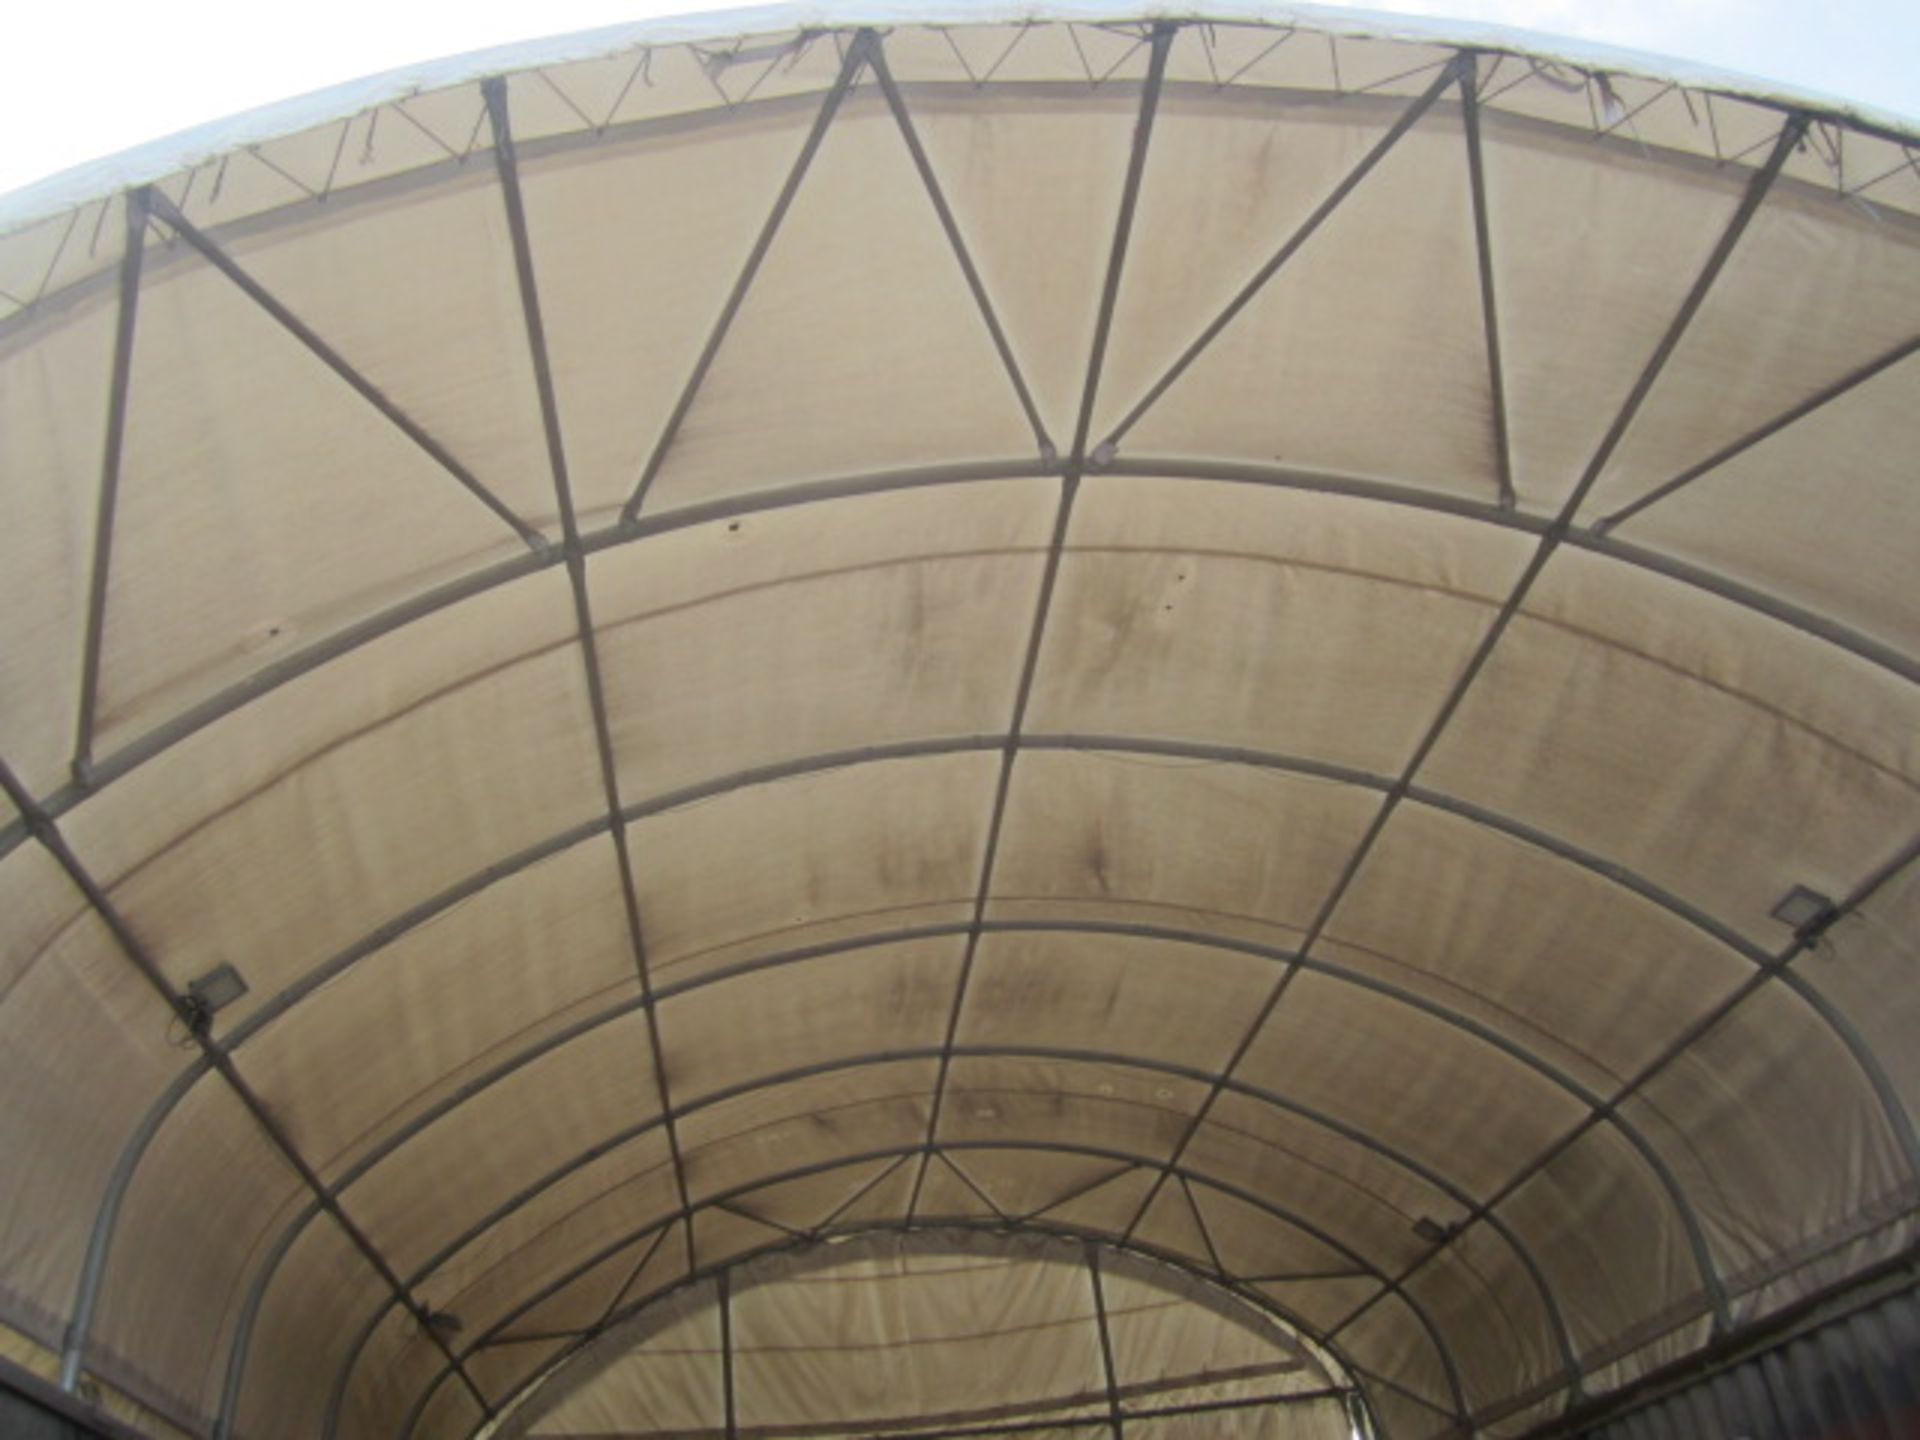 Shelter - IT portable industrial canopy, tubular frame, approx. 40ft length x 22ft width x 20ft - Image 2 of 6